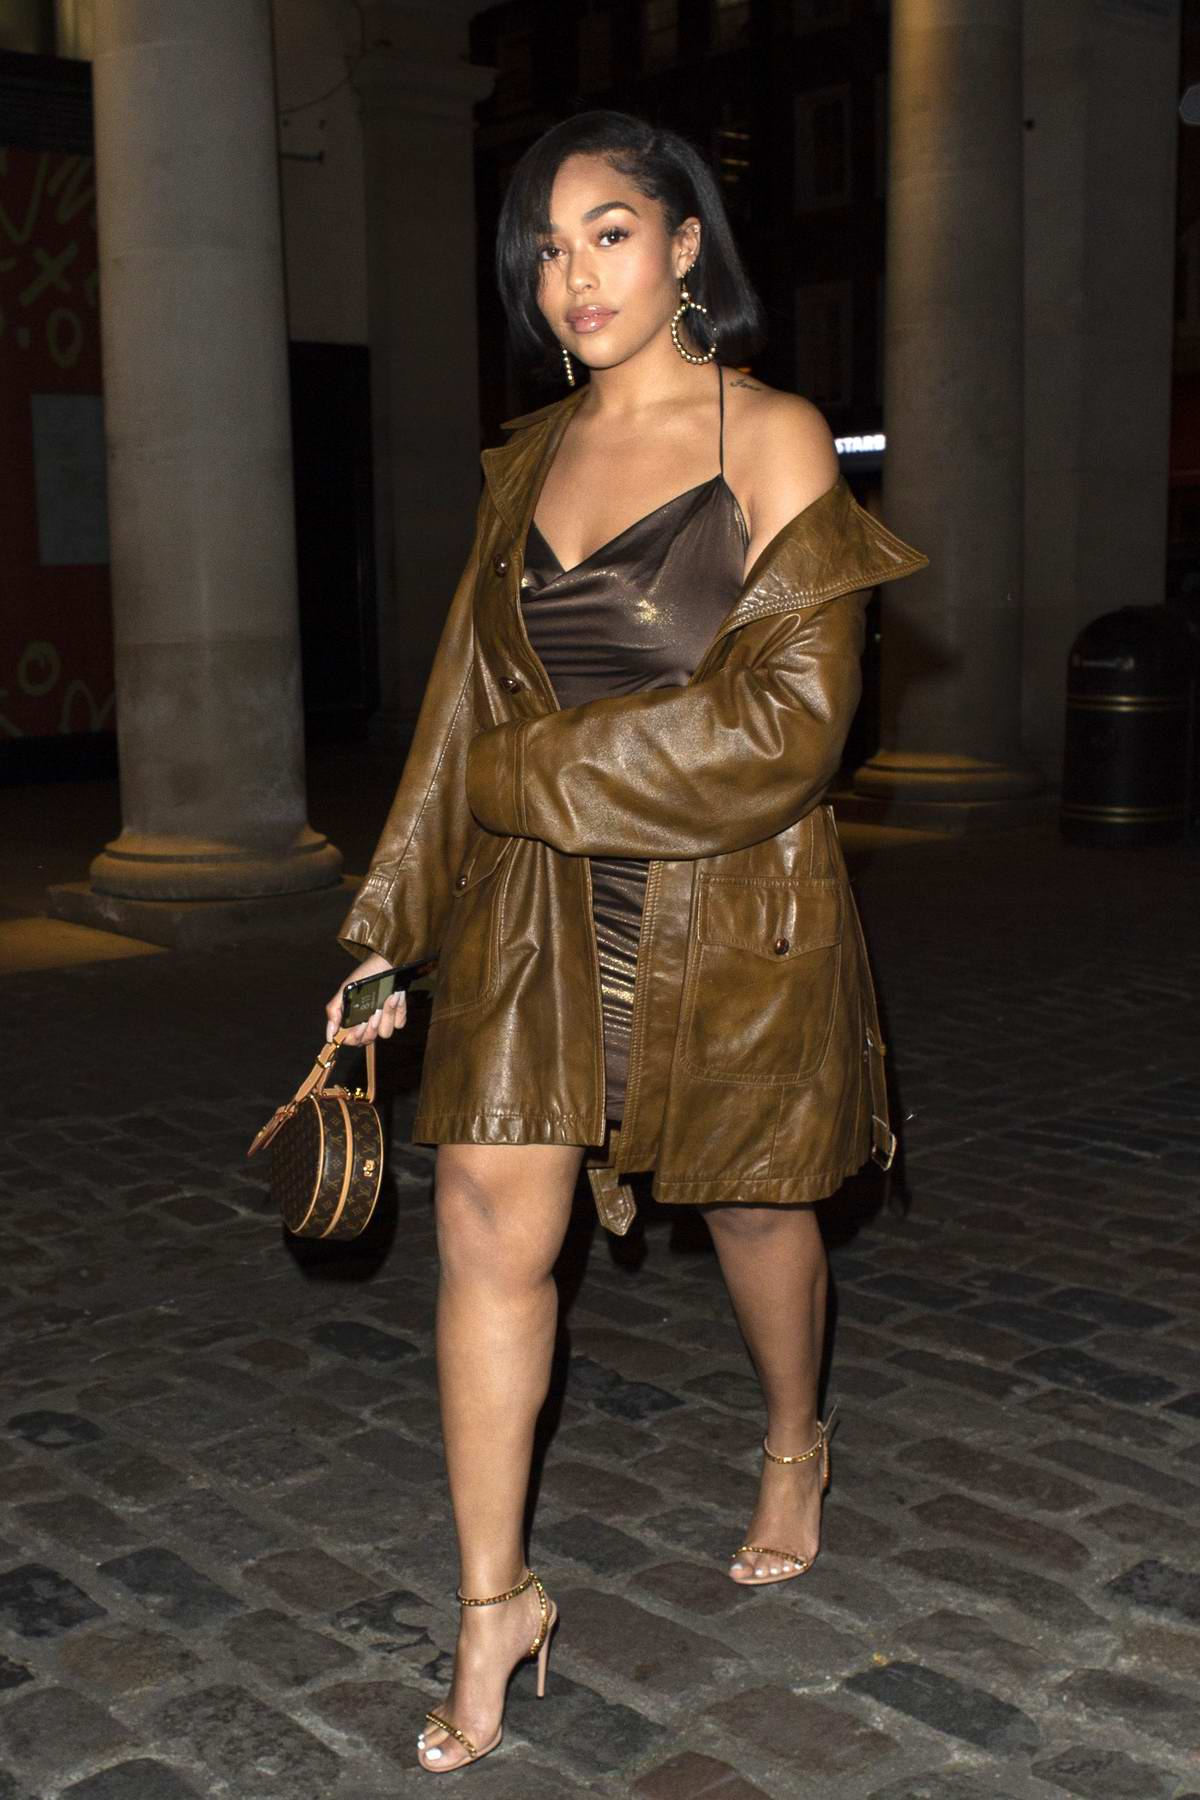 Jordyn Woods wears a brown mini dress with matching leather jacket while out for dinner with her mother at Sushisamba in London, UK